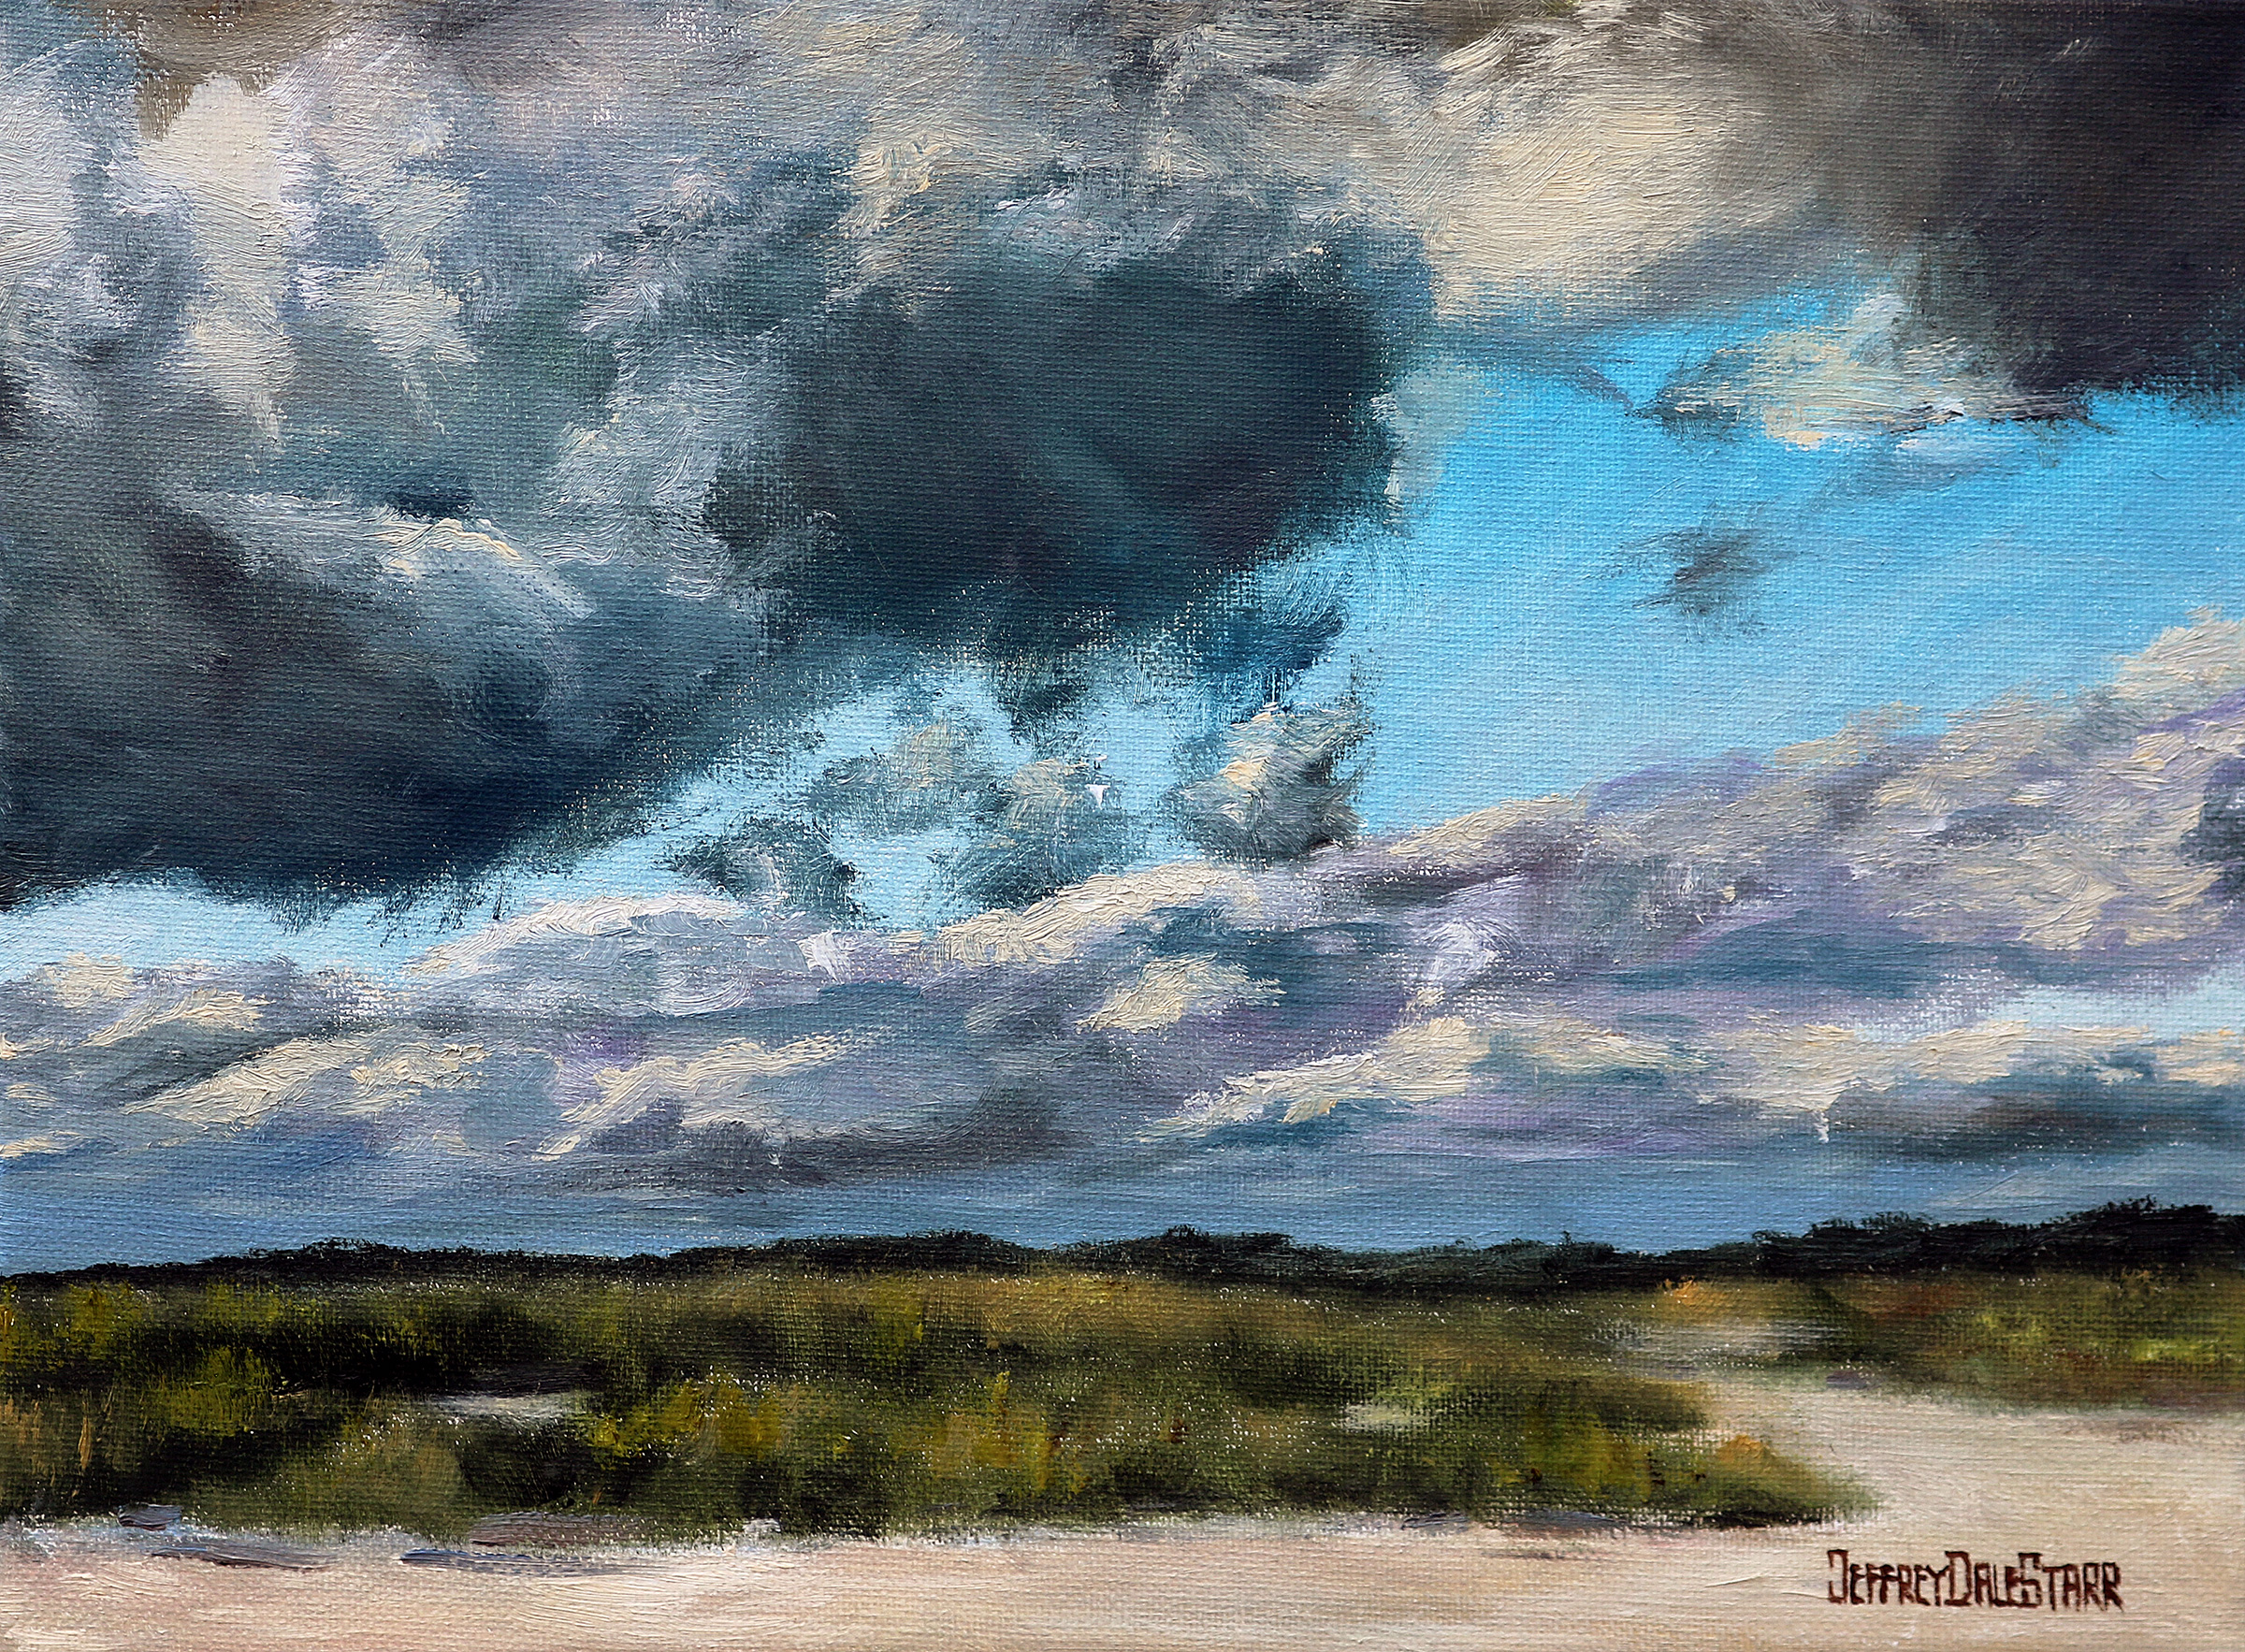 The Storm Rolls Over the Beach by Jeffrey Dale Starr